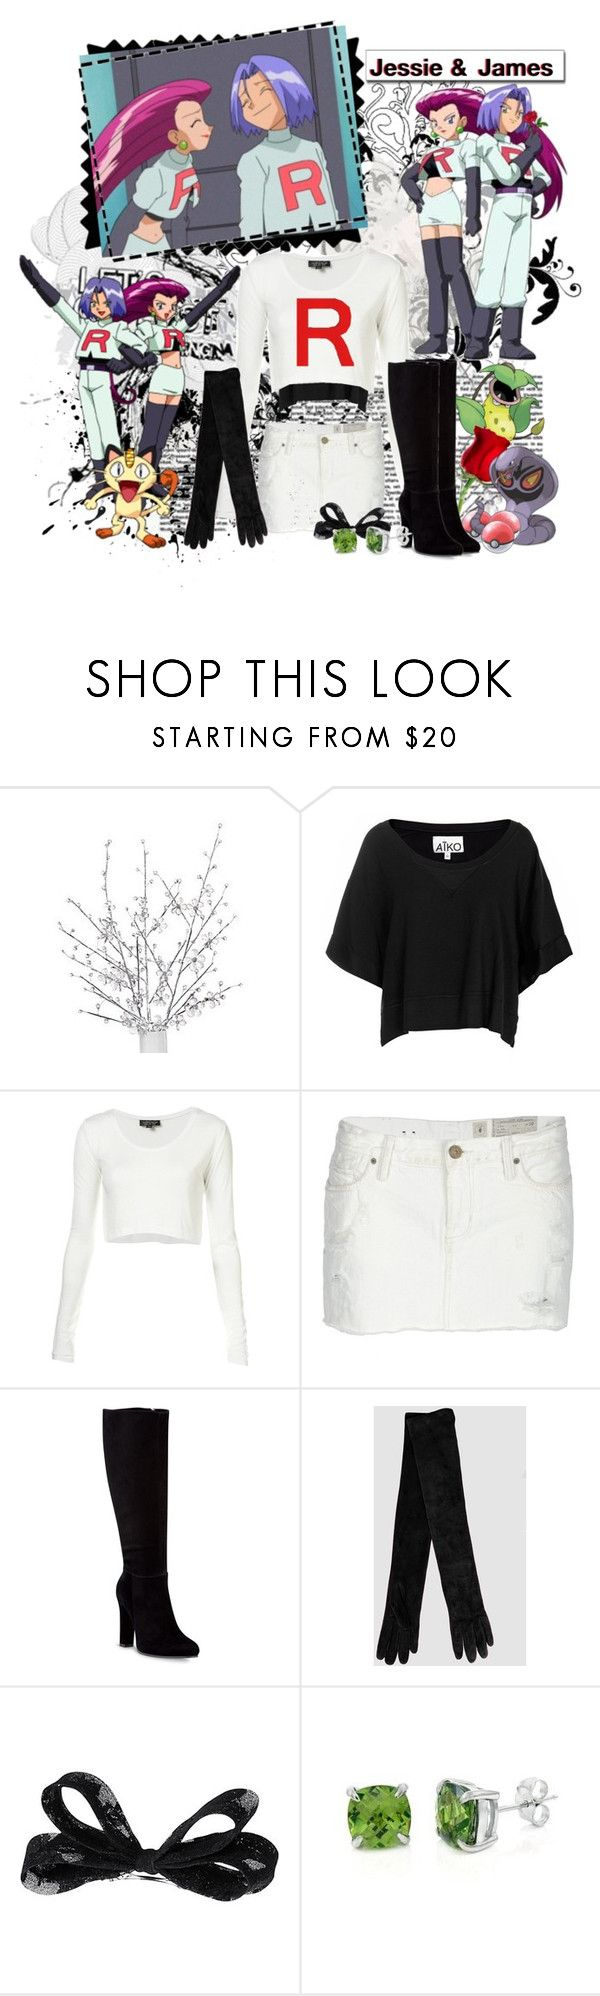 """o1. The couple you want(ed) to end up together - Jessie and James"" by marthamaxwell ❤ liked on Polyvore featuring Aiko, AllSaints, Mimosa, Yves Saint Laurent, H&M, Fantasy Jewelry Box and team rocket pokemon"